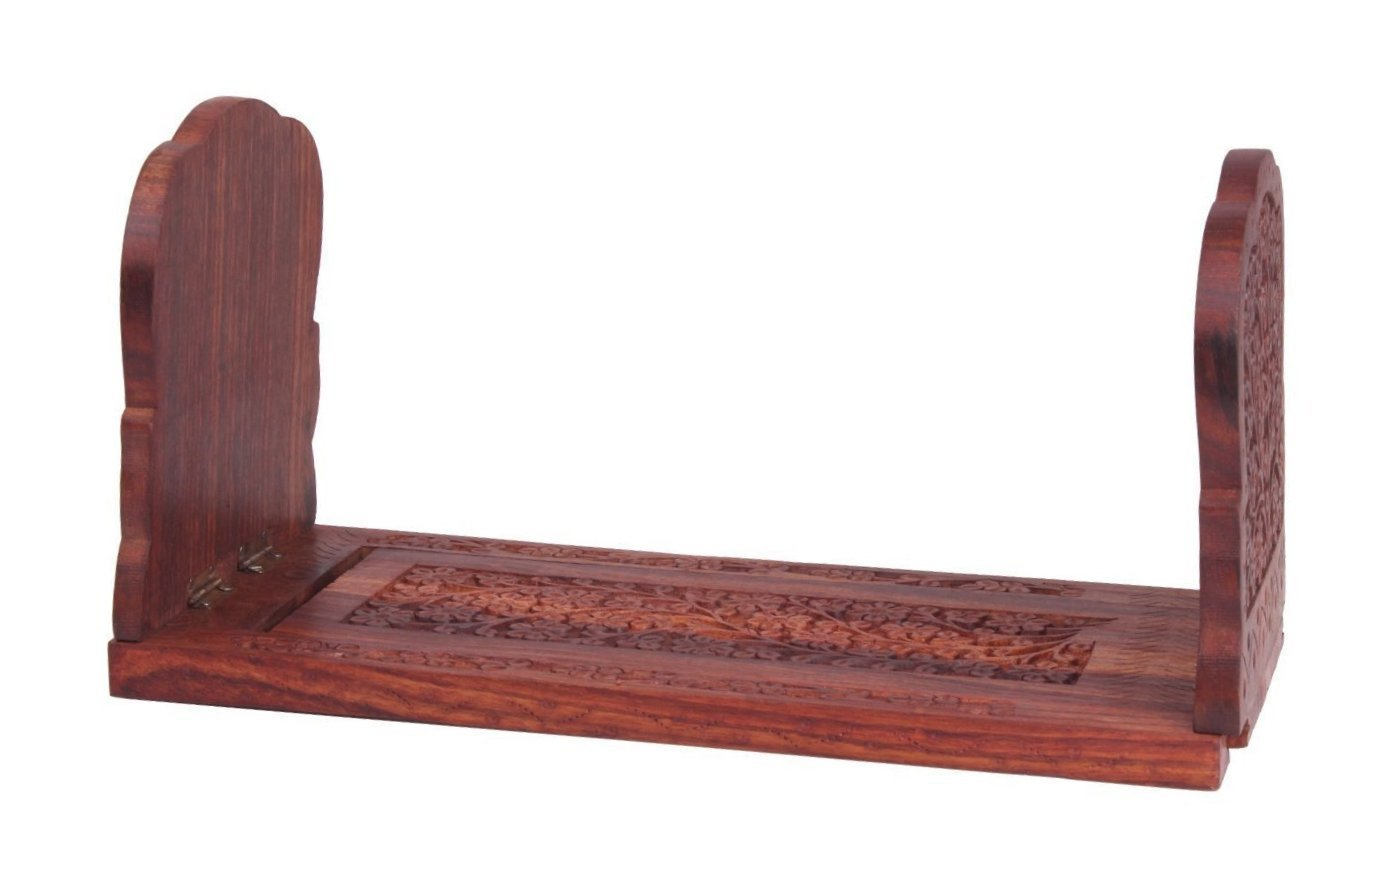 Valentine Day Special Present, Wooden Expandable & Foldable Rosewood Book or CD Stand with Intricate Floral Carvings,book stand for reading, 13 x 5 x 6